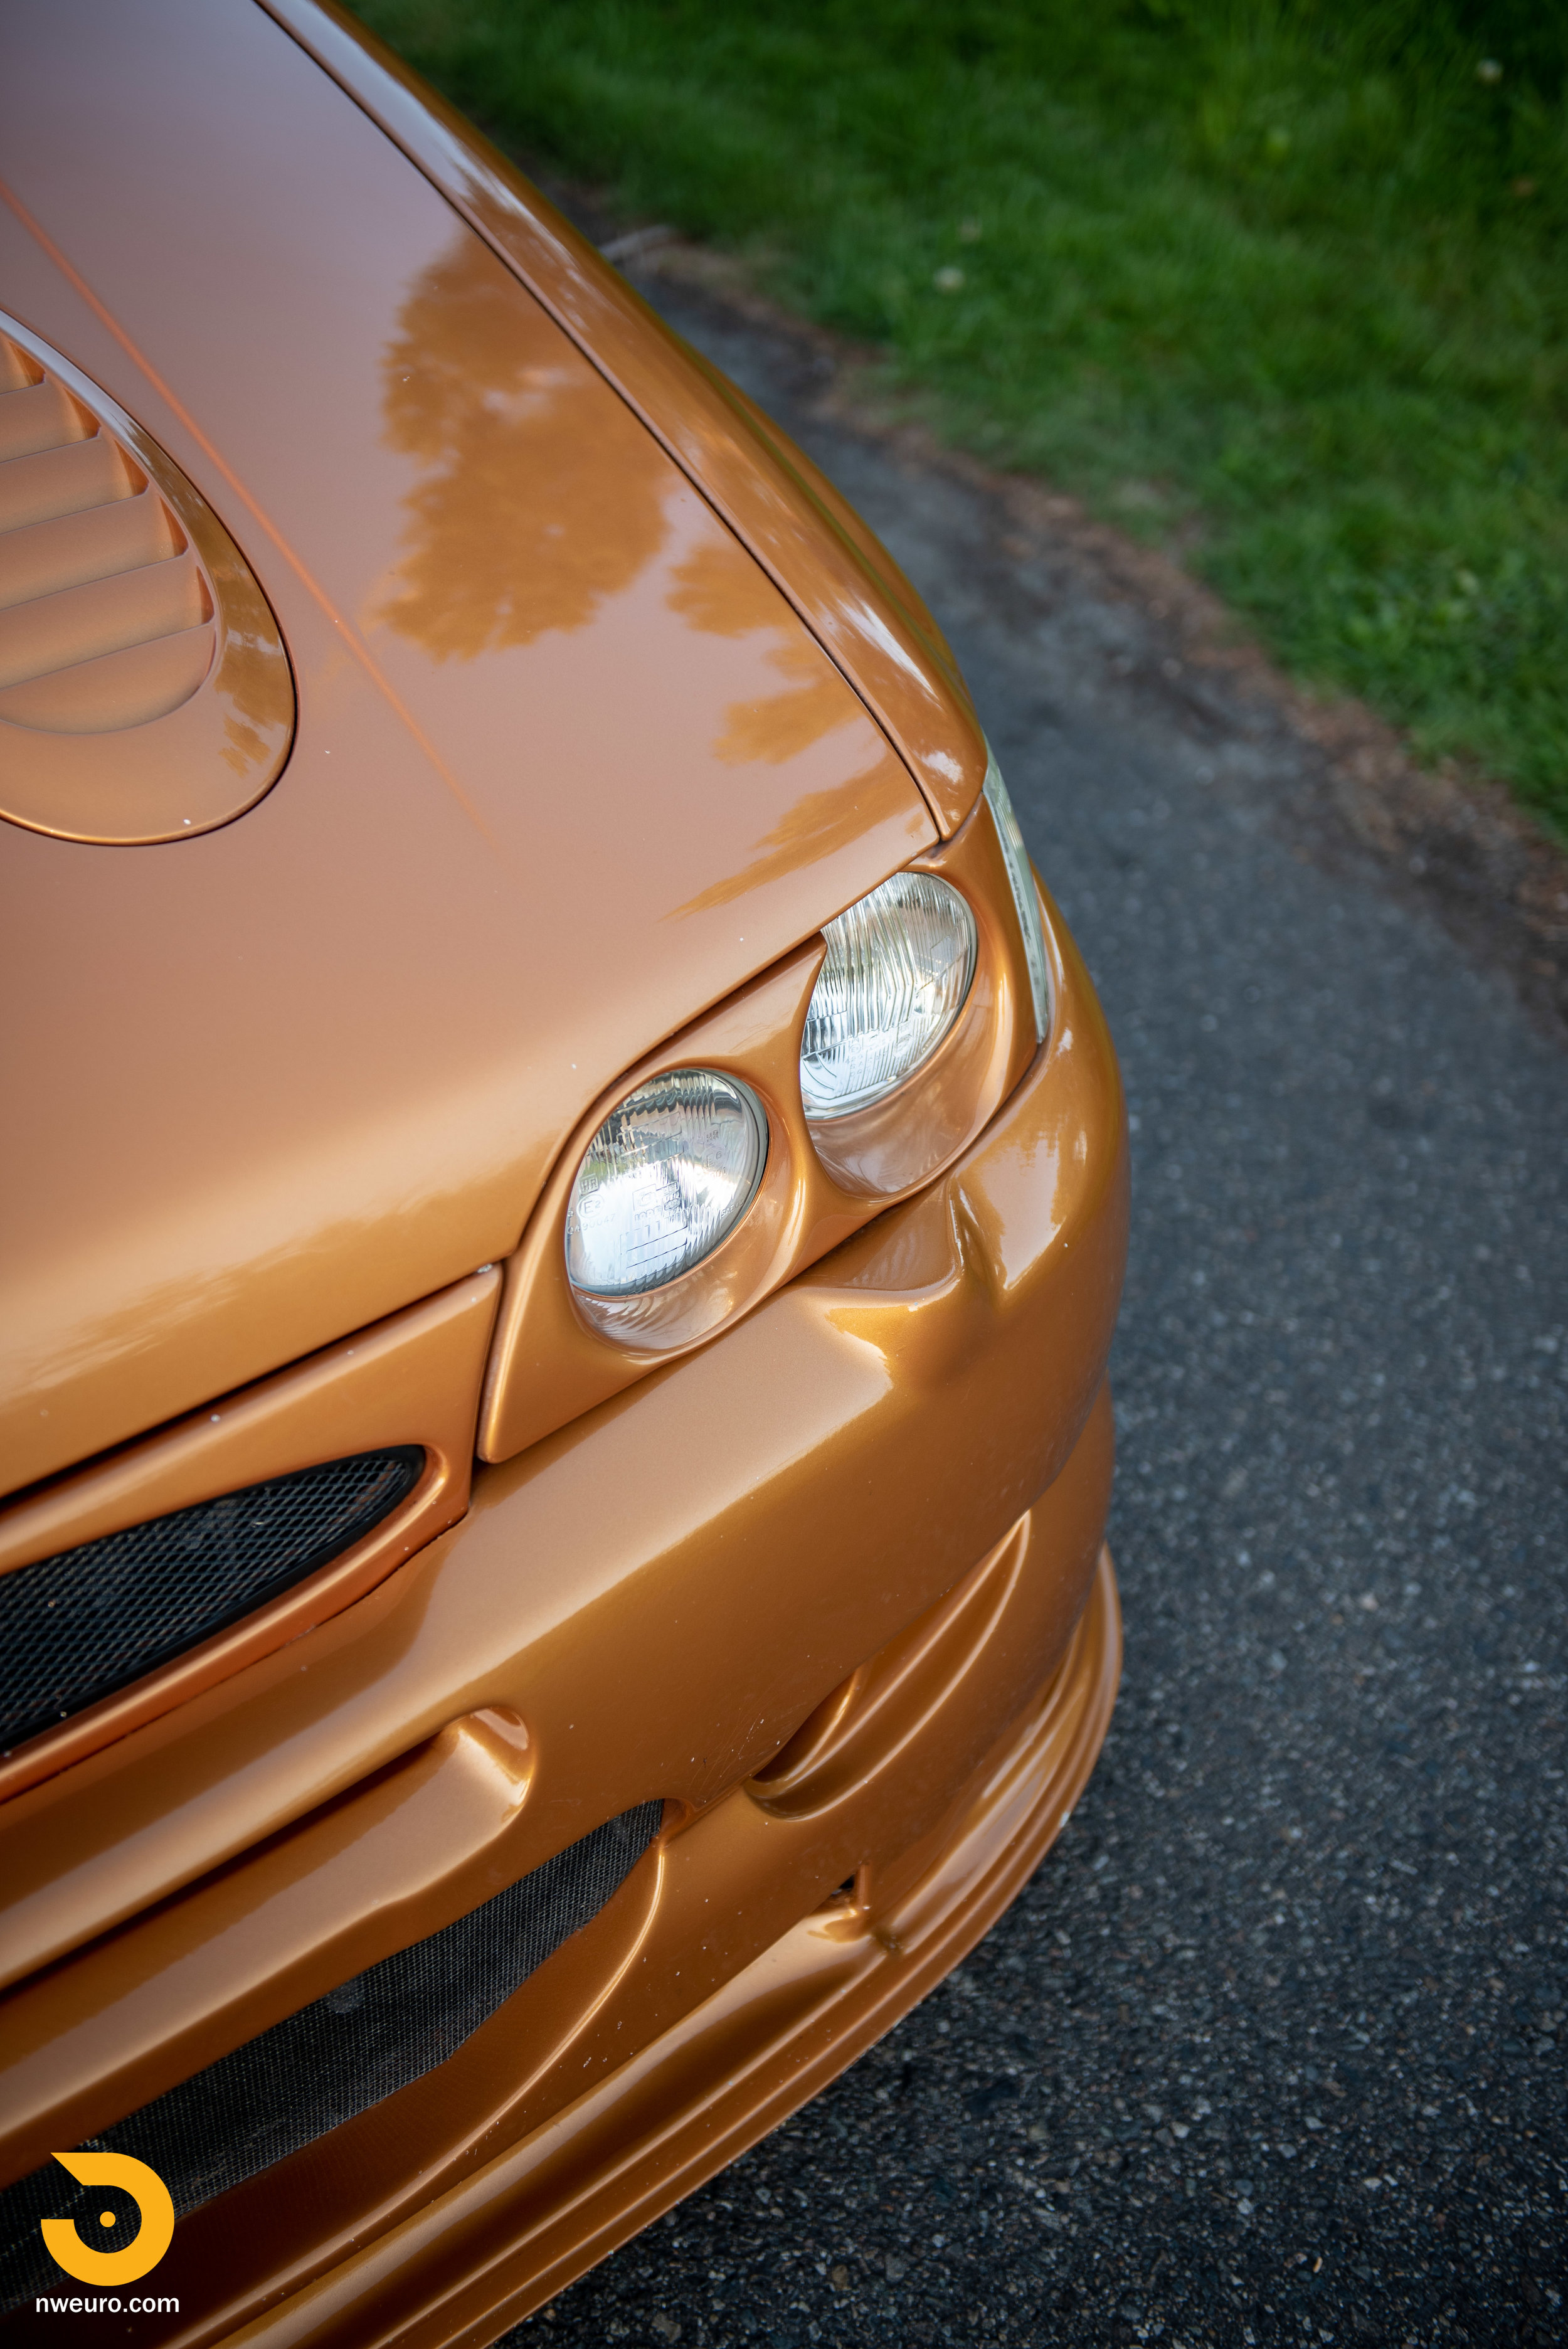 1995 Ford Escort Cosworth RS Gold-13.jpg